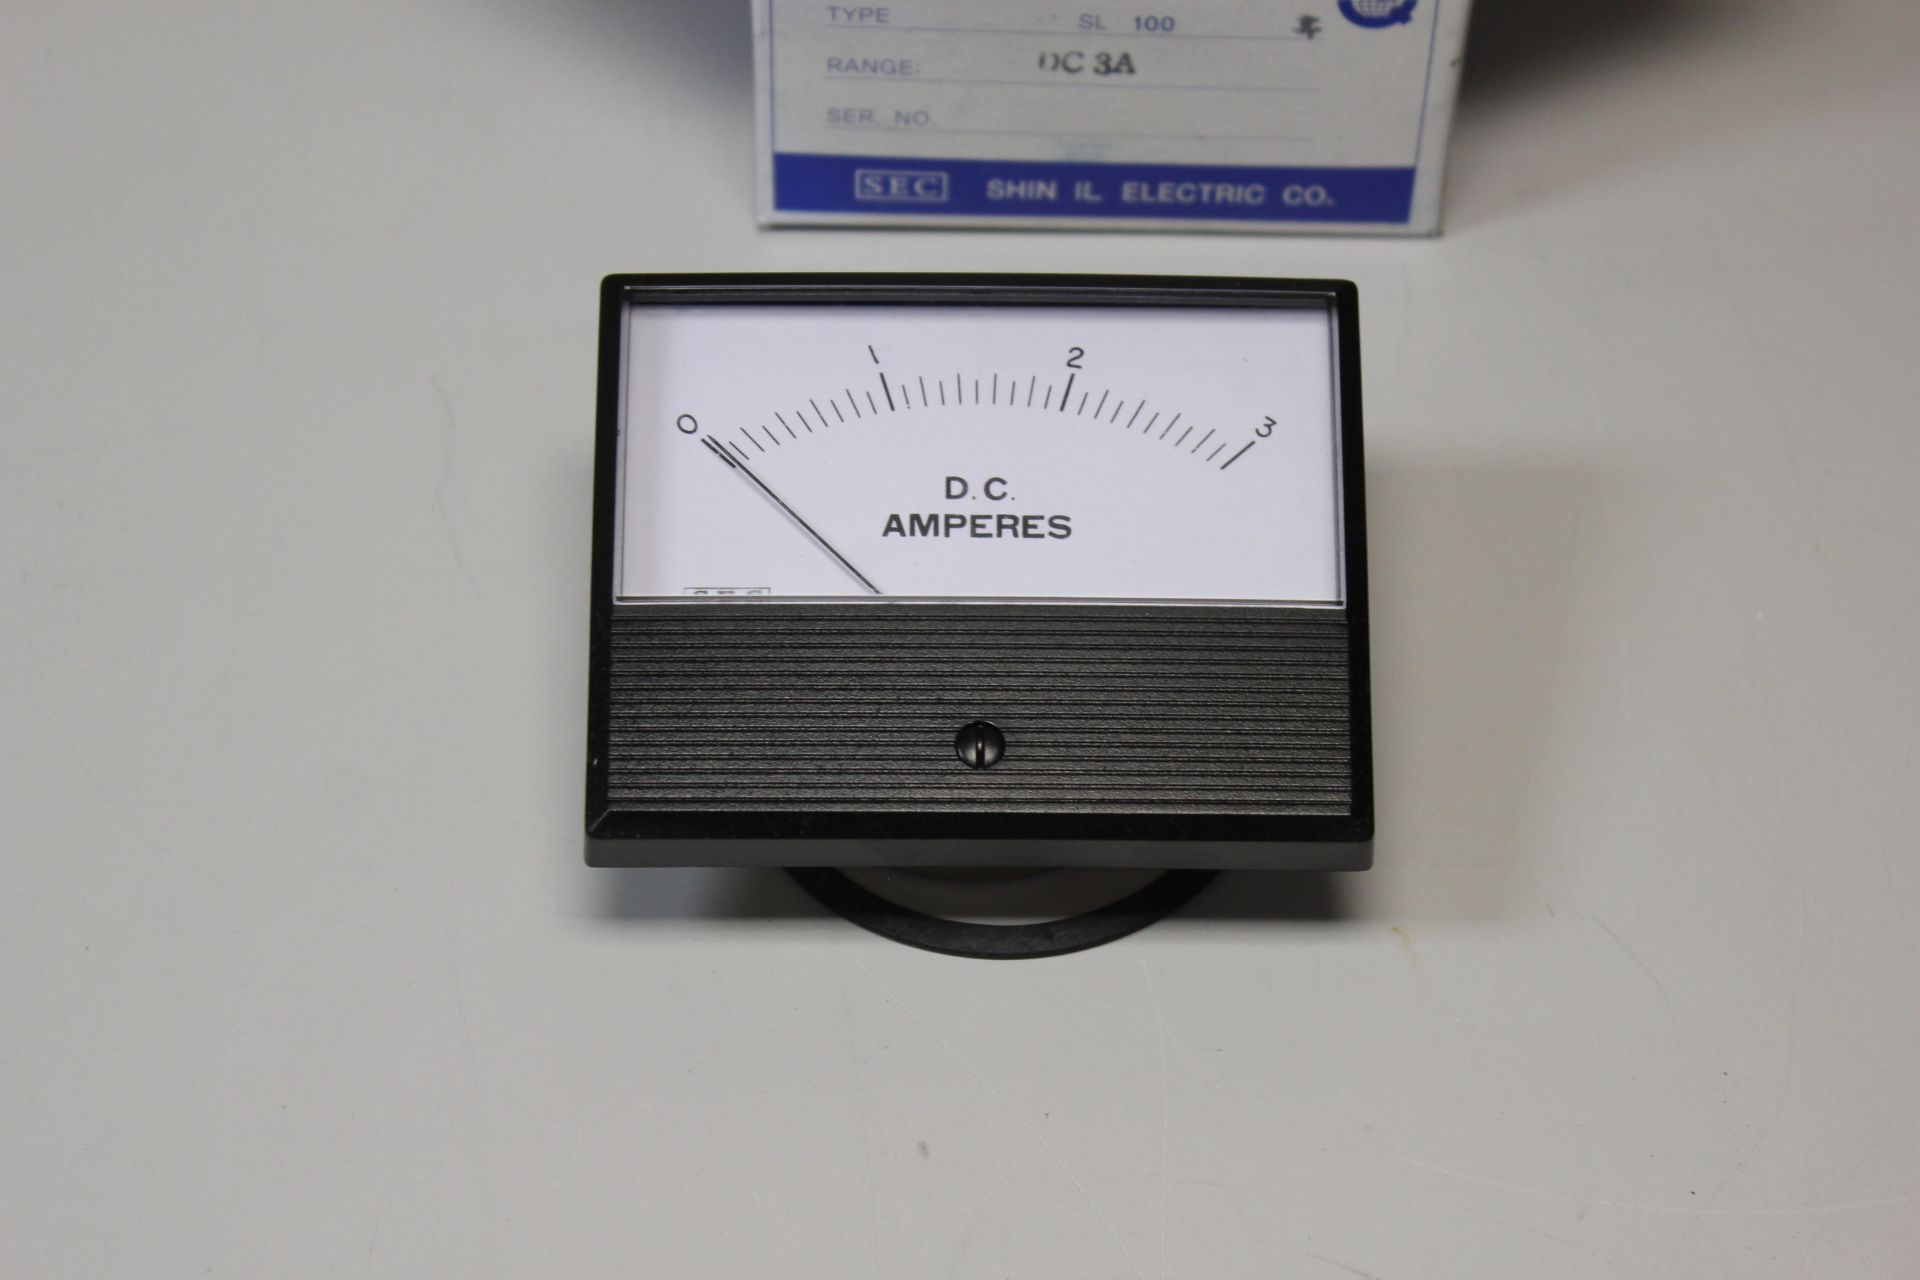 NEW SEC SHIN IL ELECTRIC AMPERES METER - Image 3 of 4